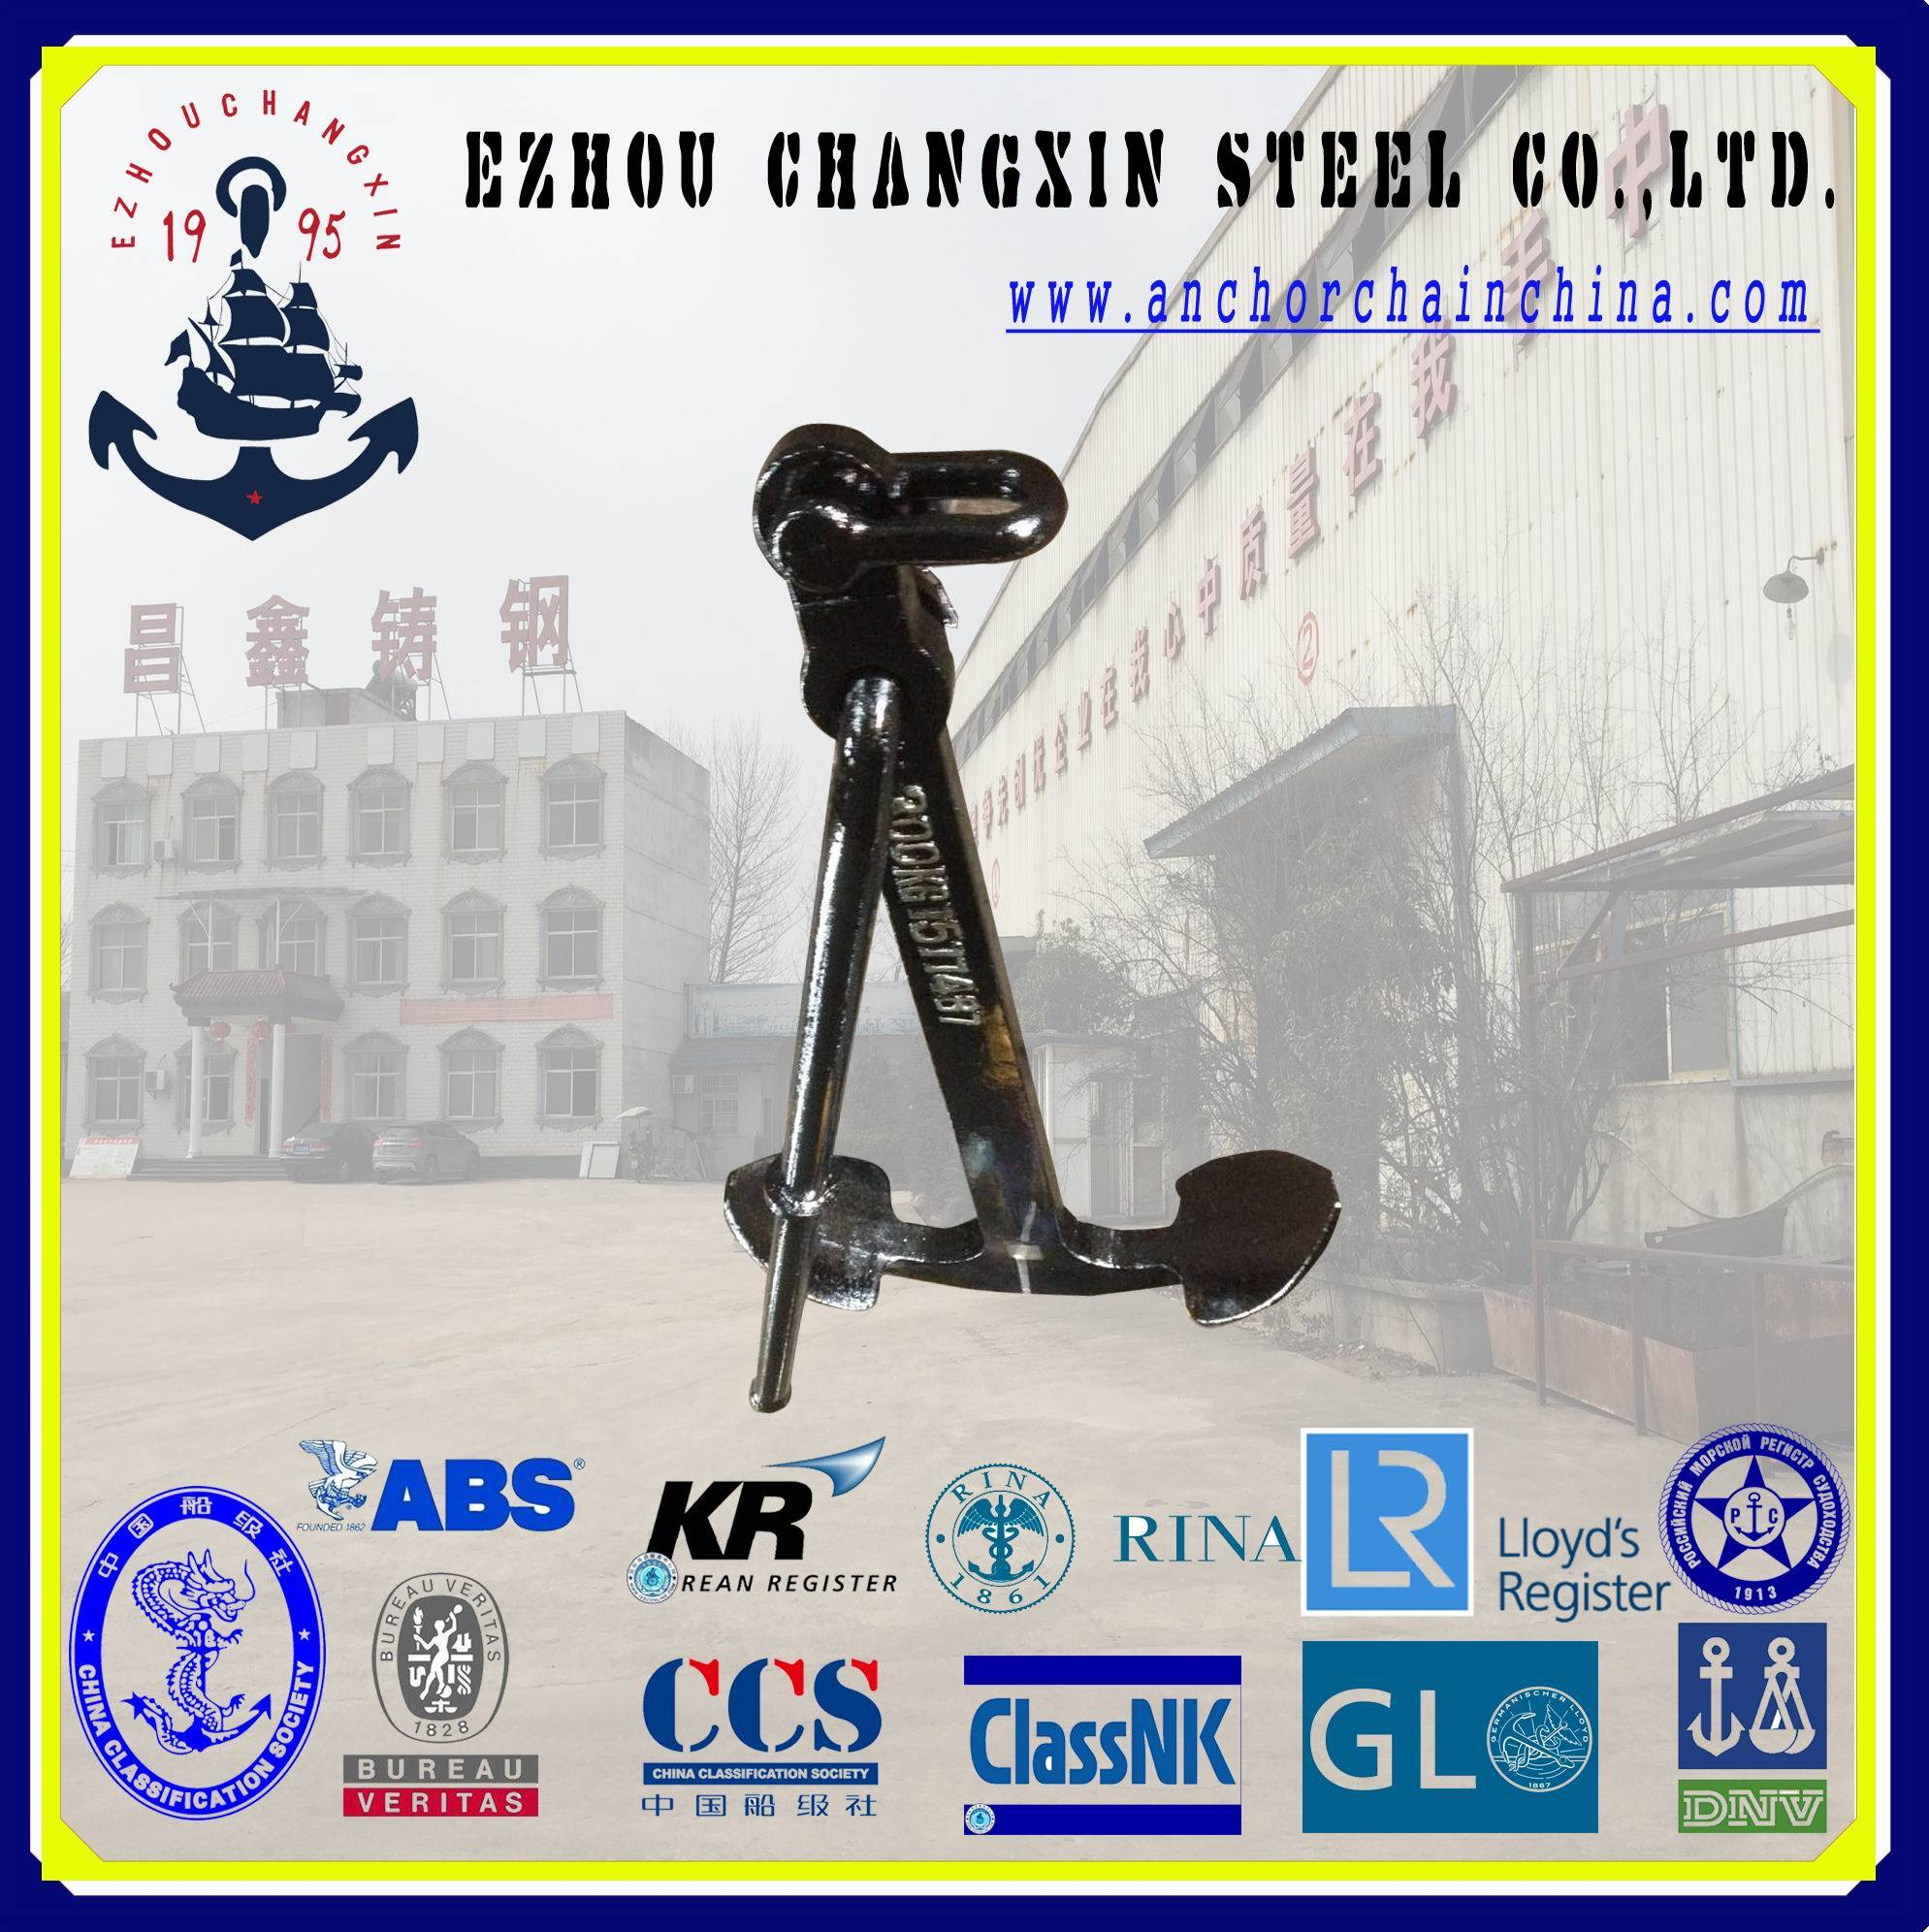 The worldsale anchor service Steel casting admiralty marine anchor    with delivery quickly